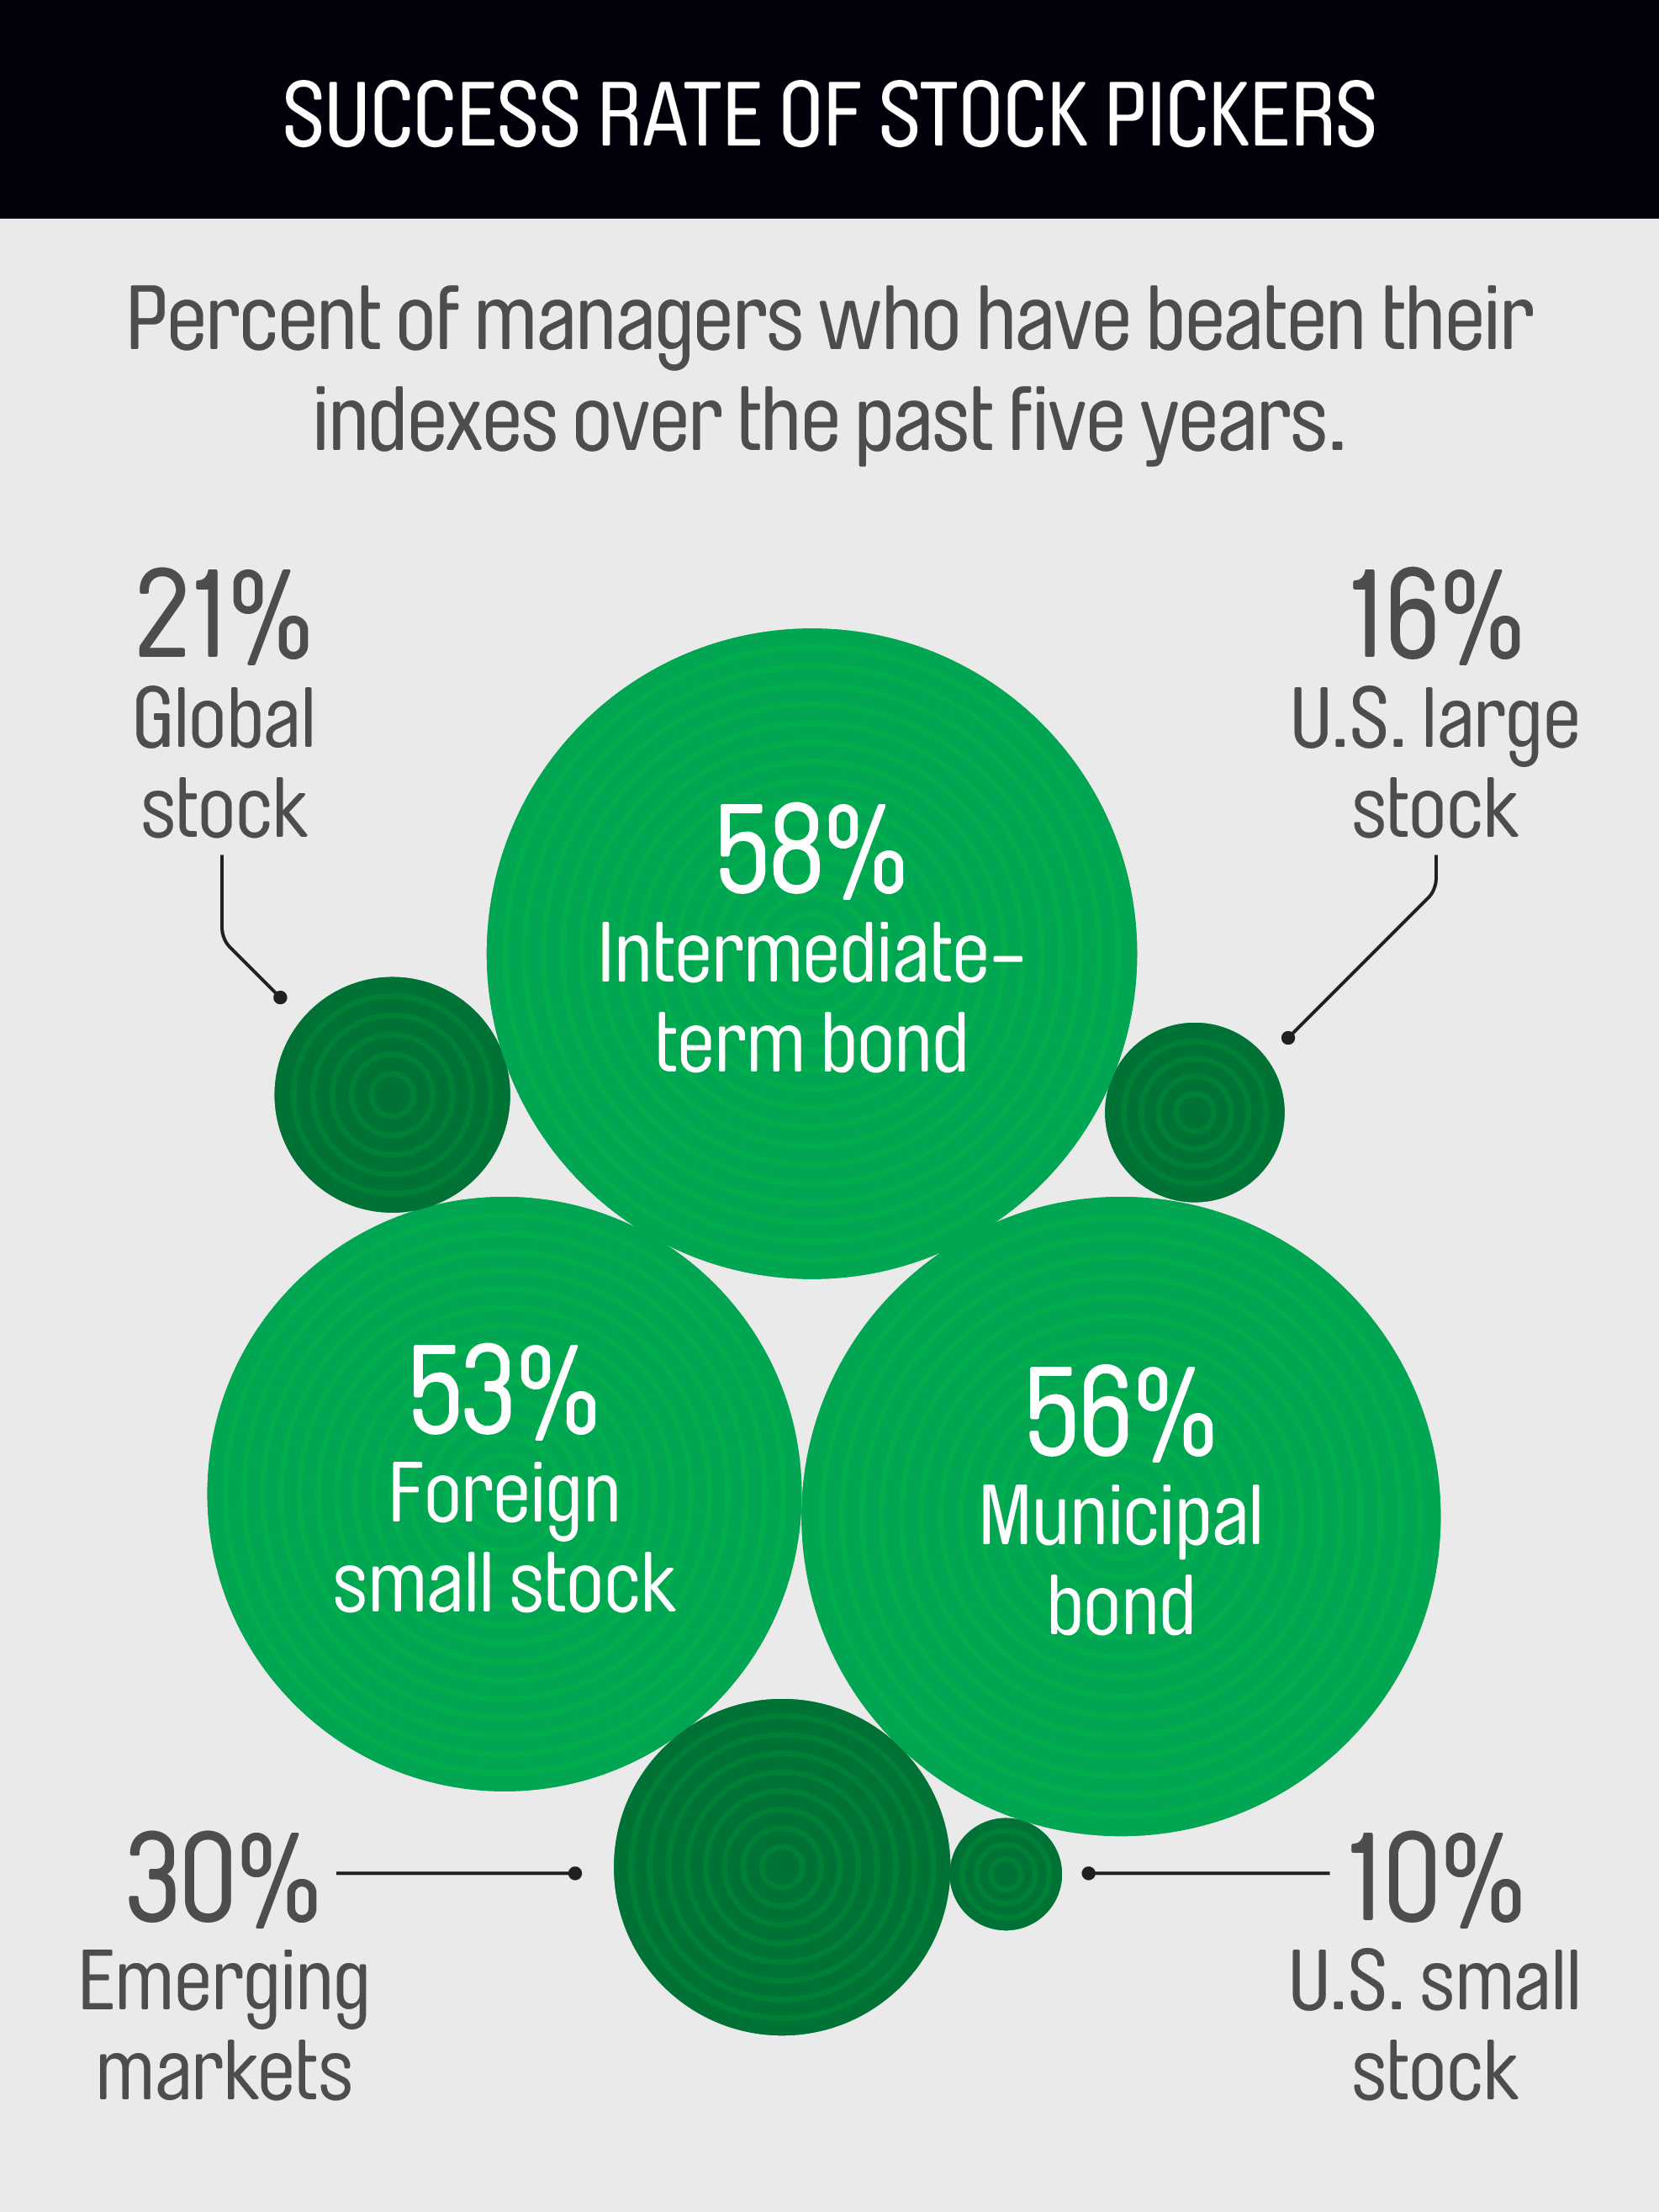 Graphic notes: Tenures are based on single-manager funds and averages for team-run funds. Sources: S&P Dow Jones Indices, Morningstar